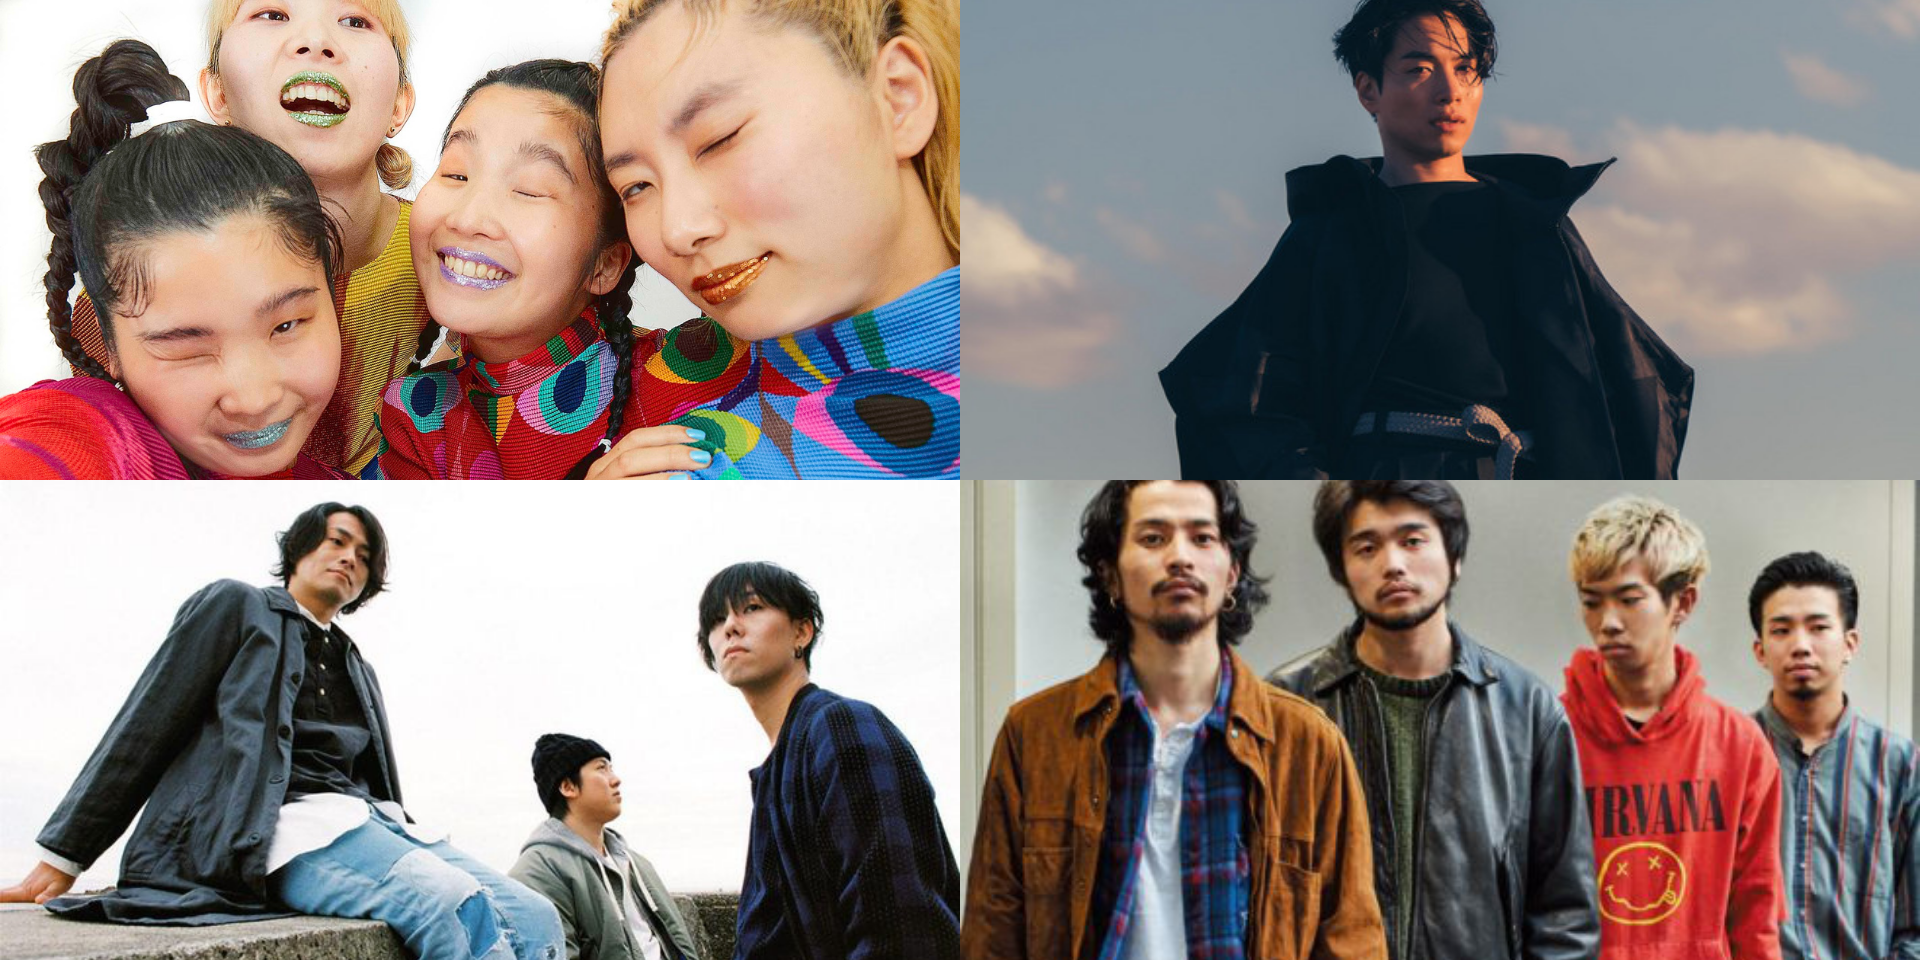 RADWIMPS, CHAI, King Gnu, SIRUP, and more to perform at Fuji Rock Festival this August